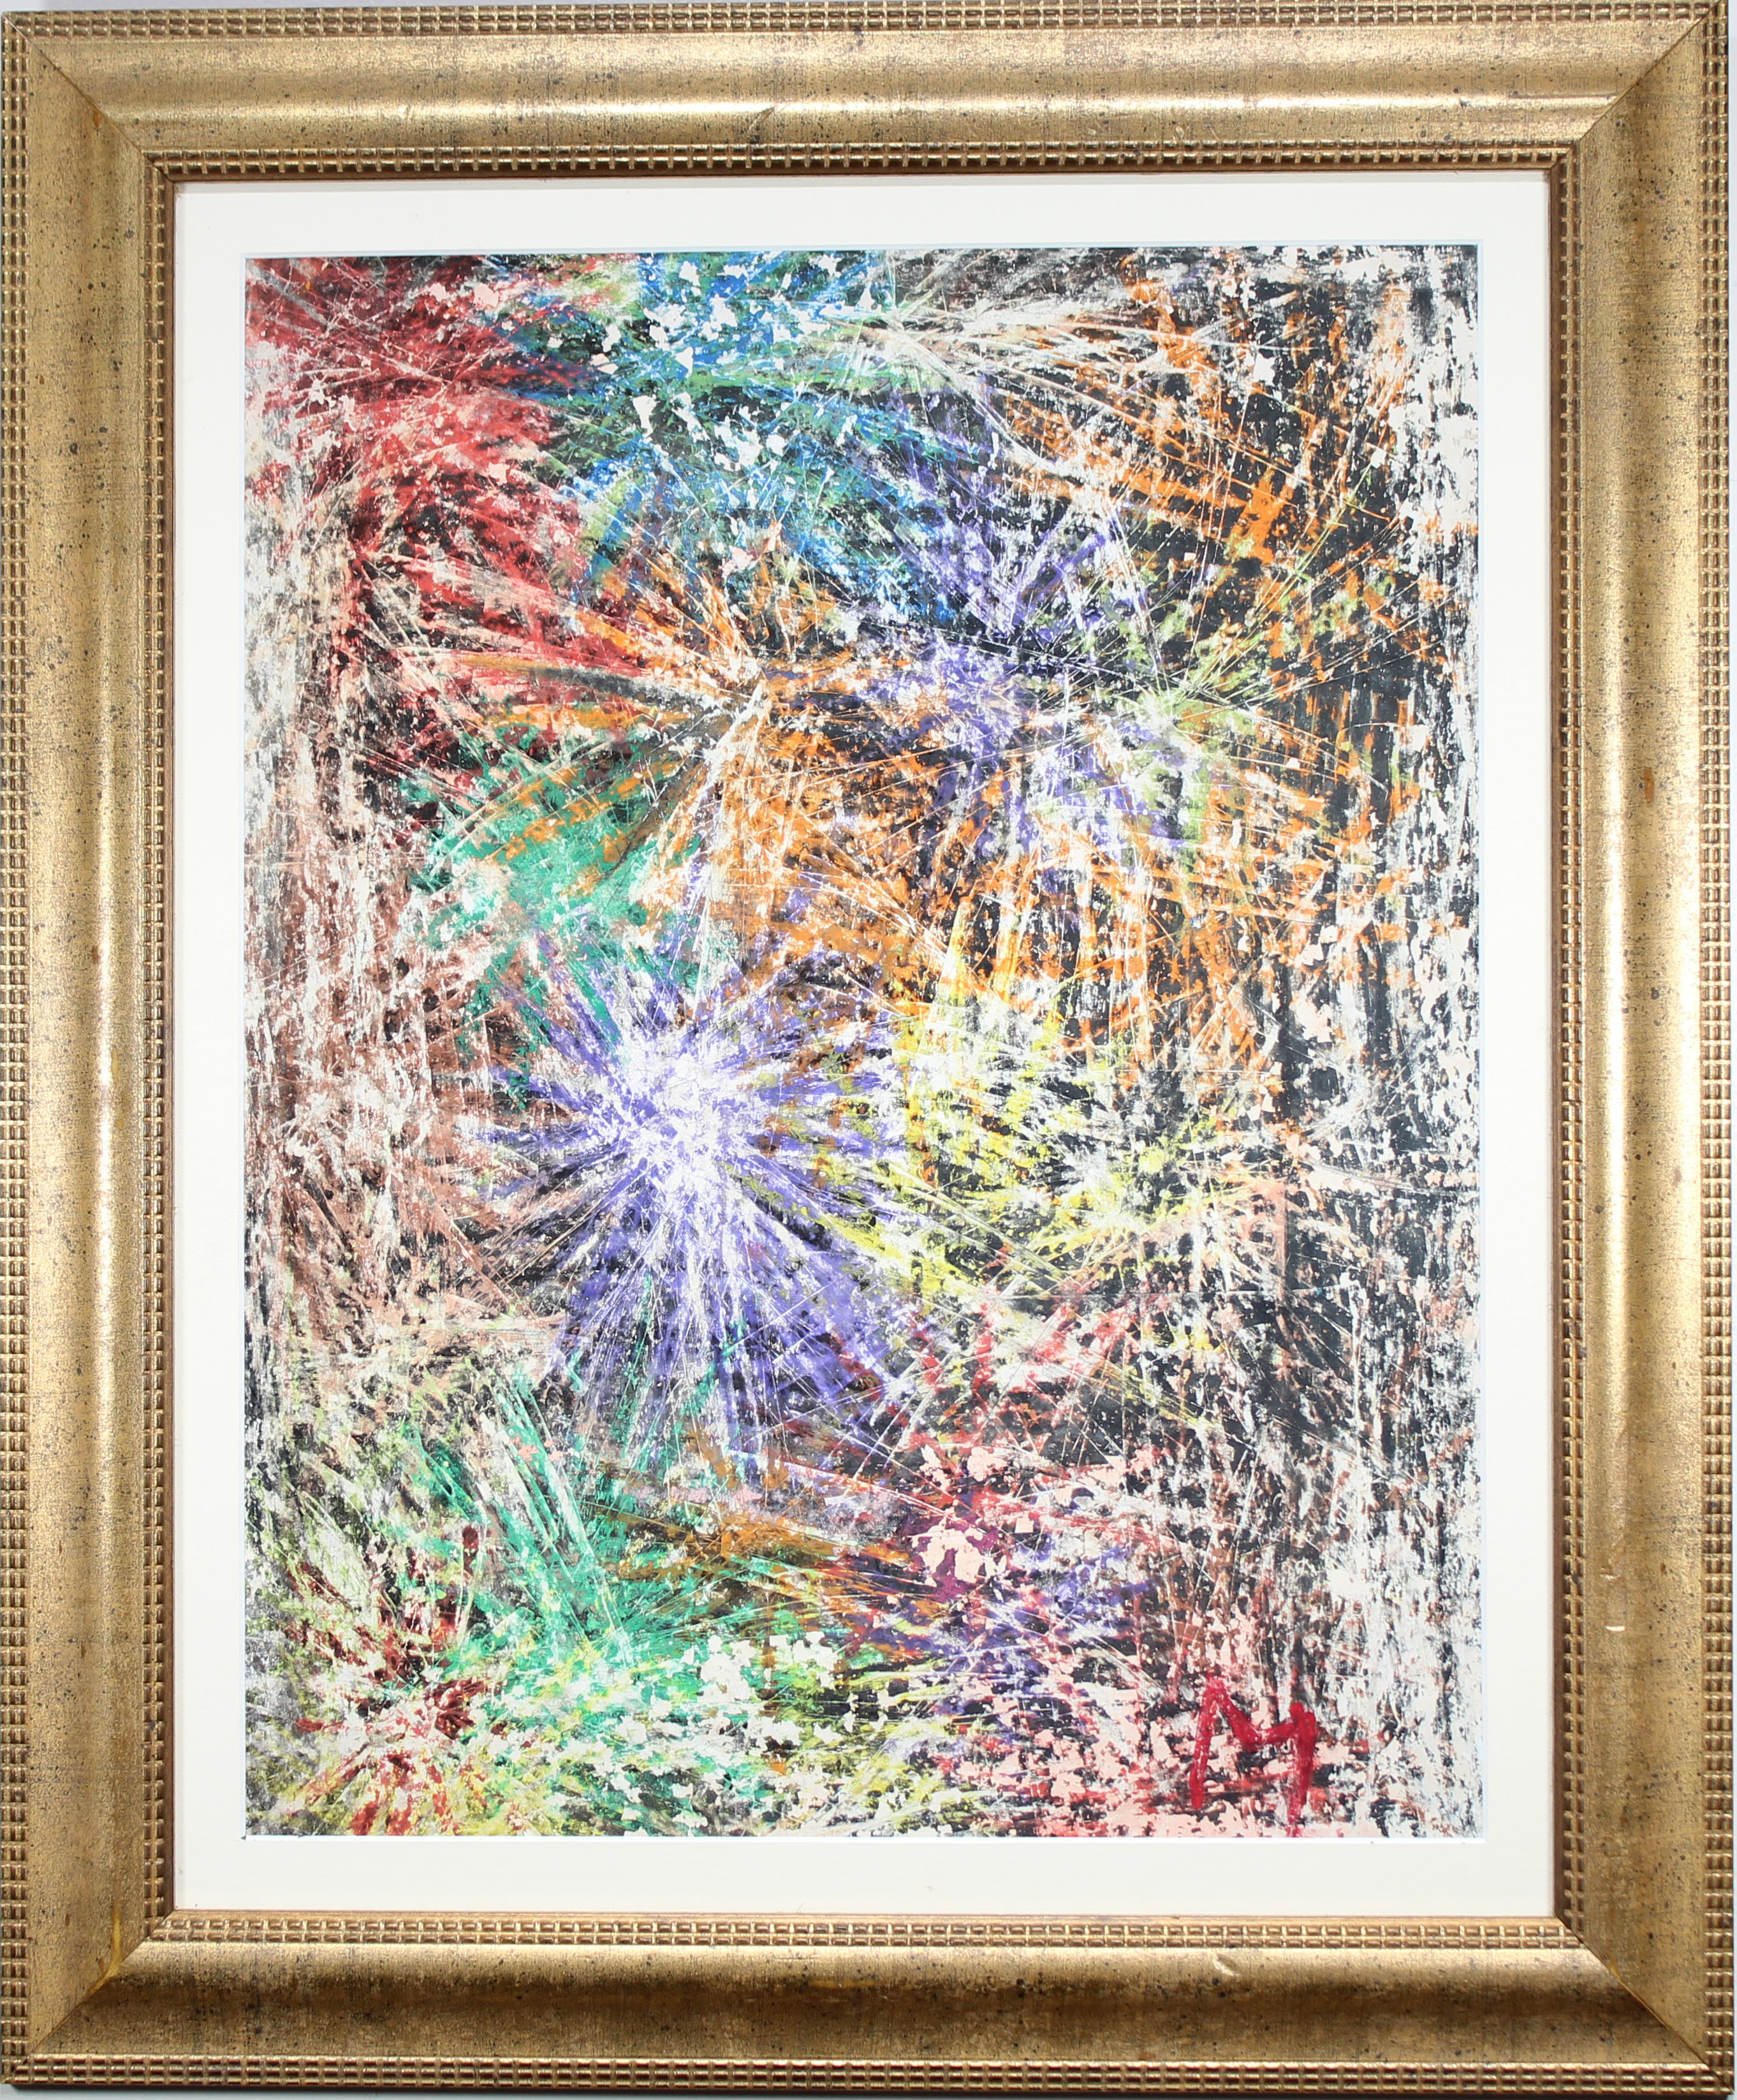 """Lot 288 - American School, """"Fireworks"""" Mixed Media. Signed"""